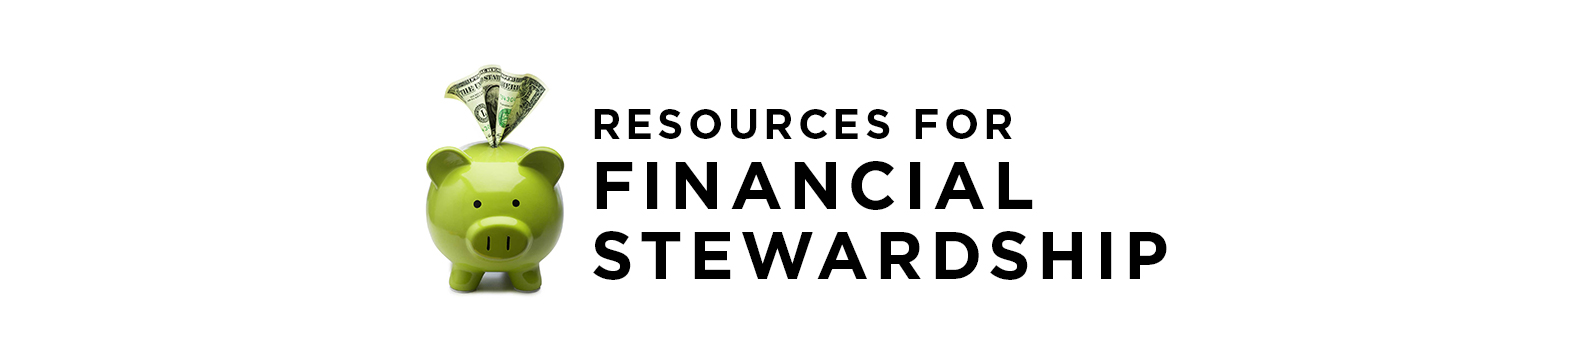 Resources for Financial Stewardship